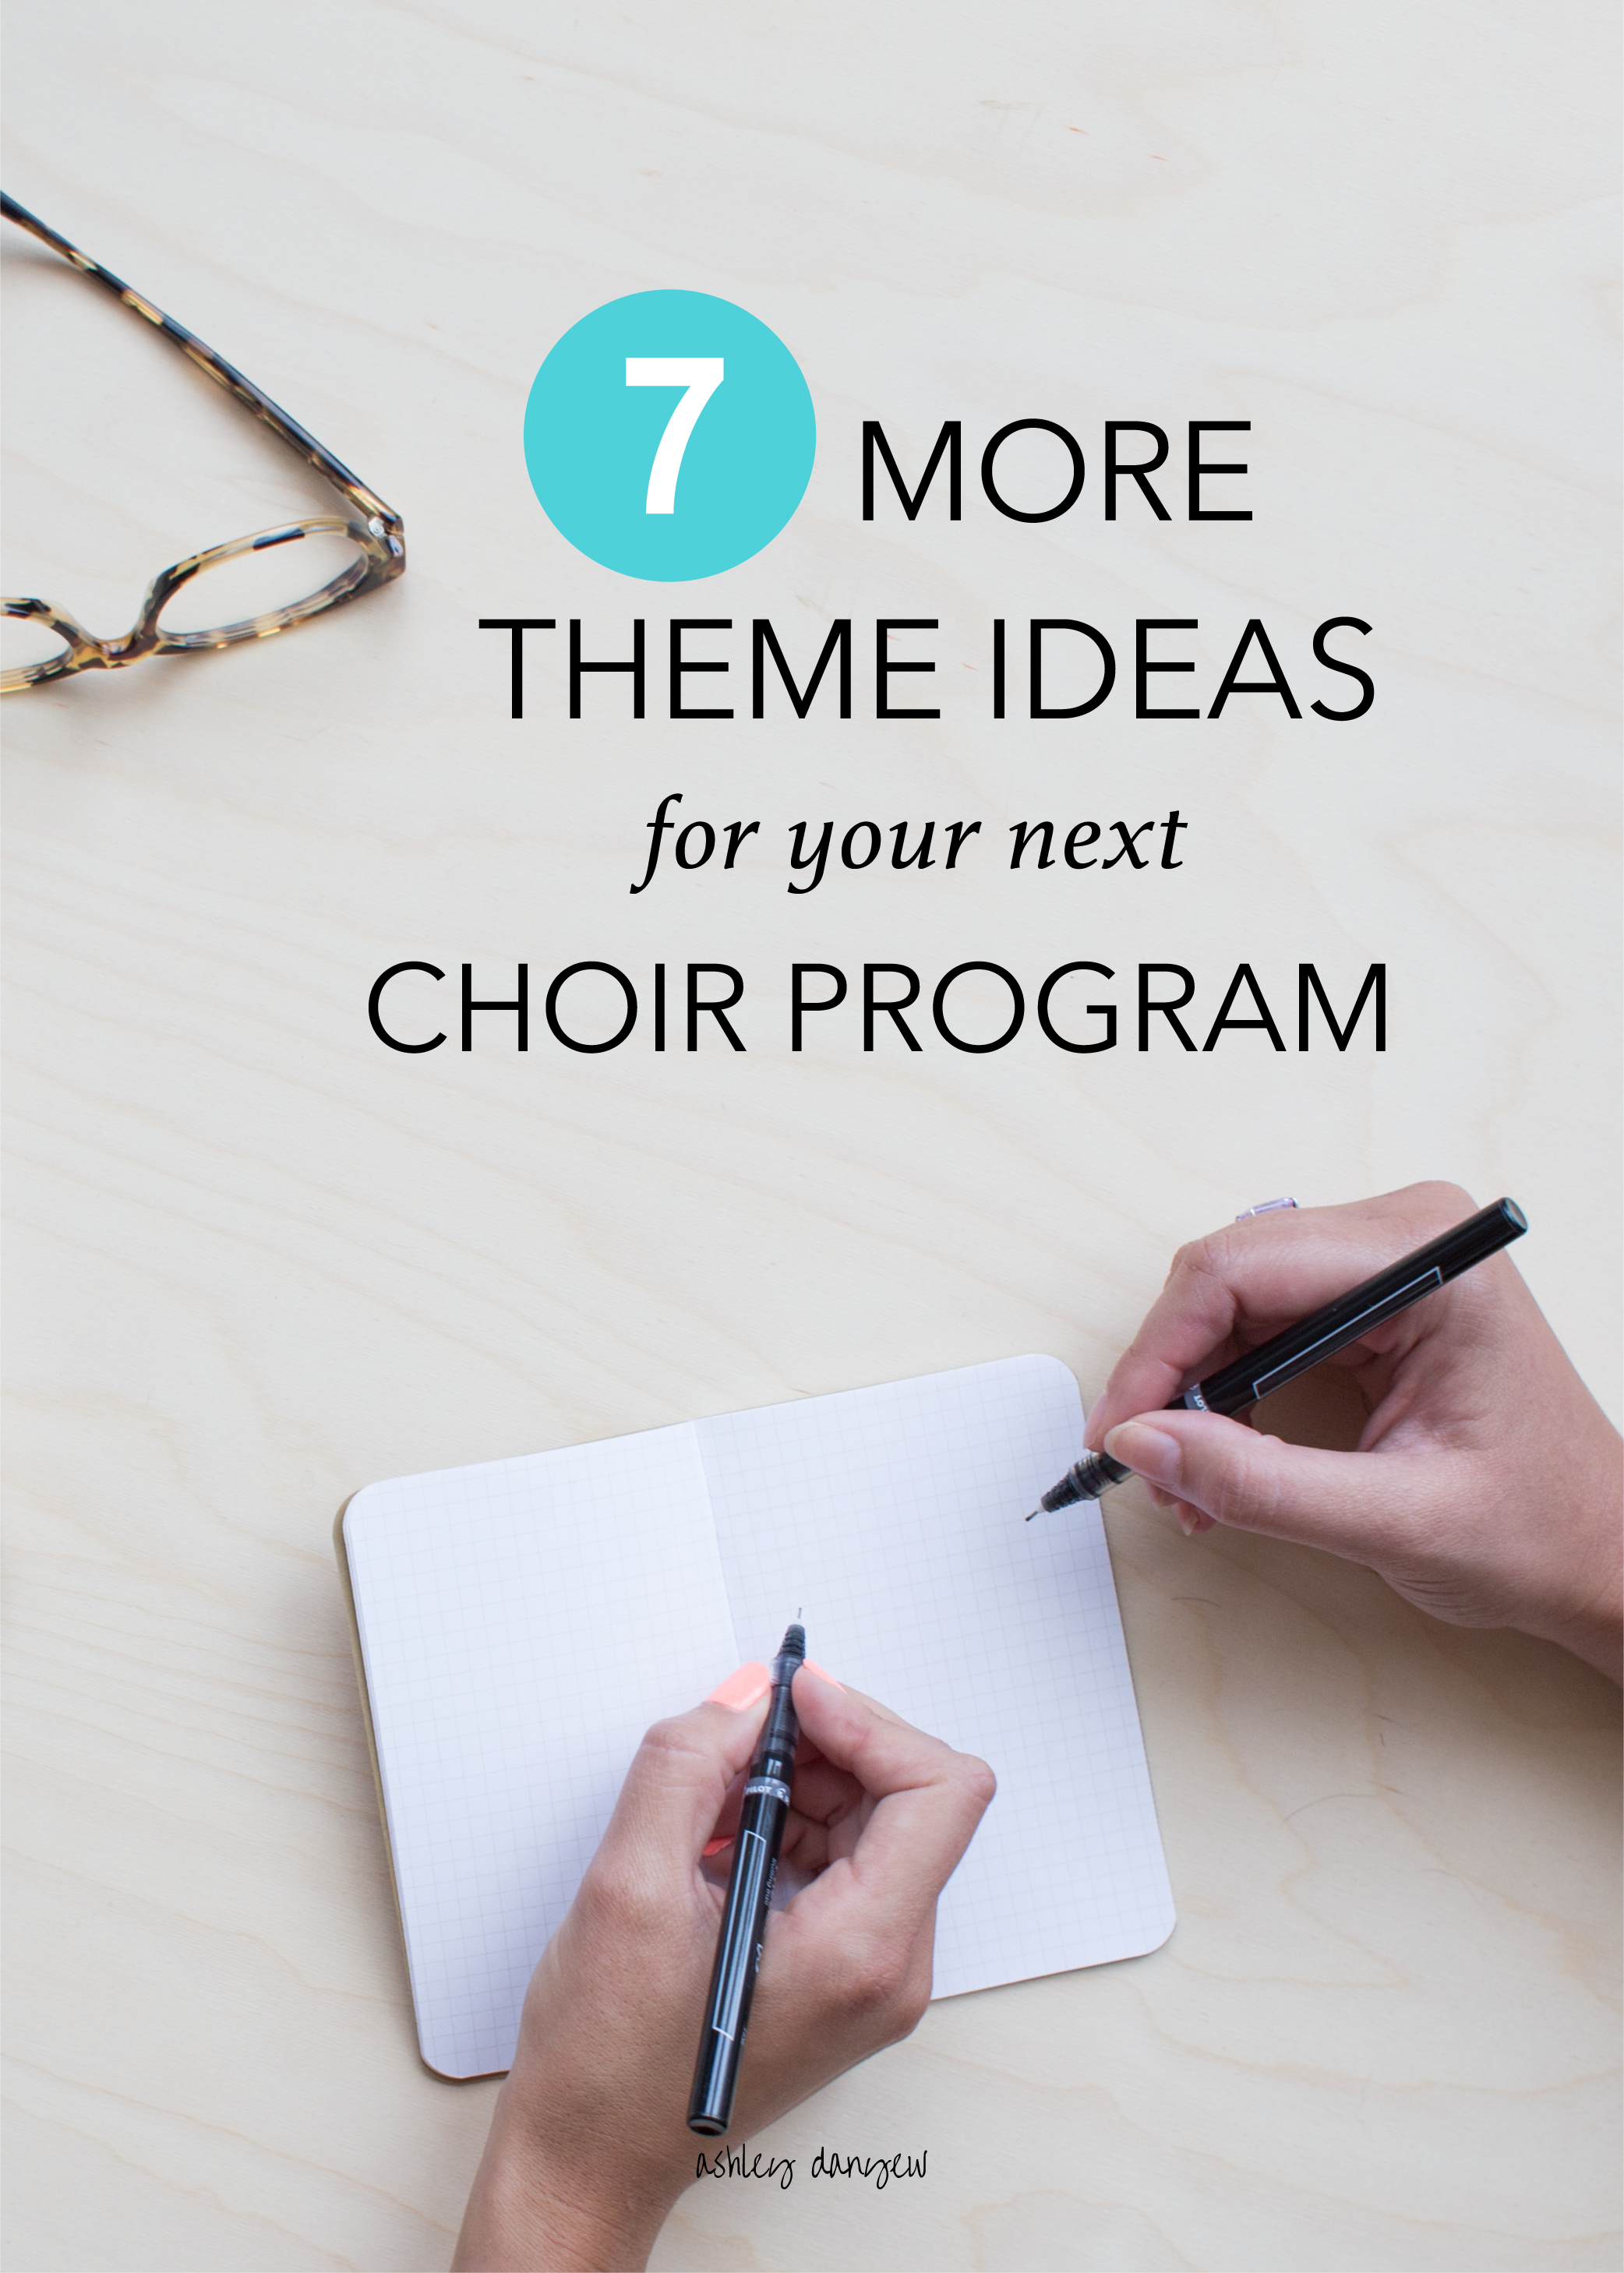 7 More Theme Ideas for Your Next Choir Program